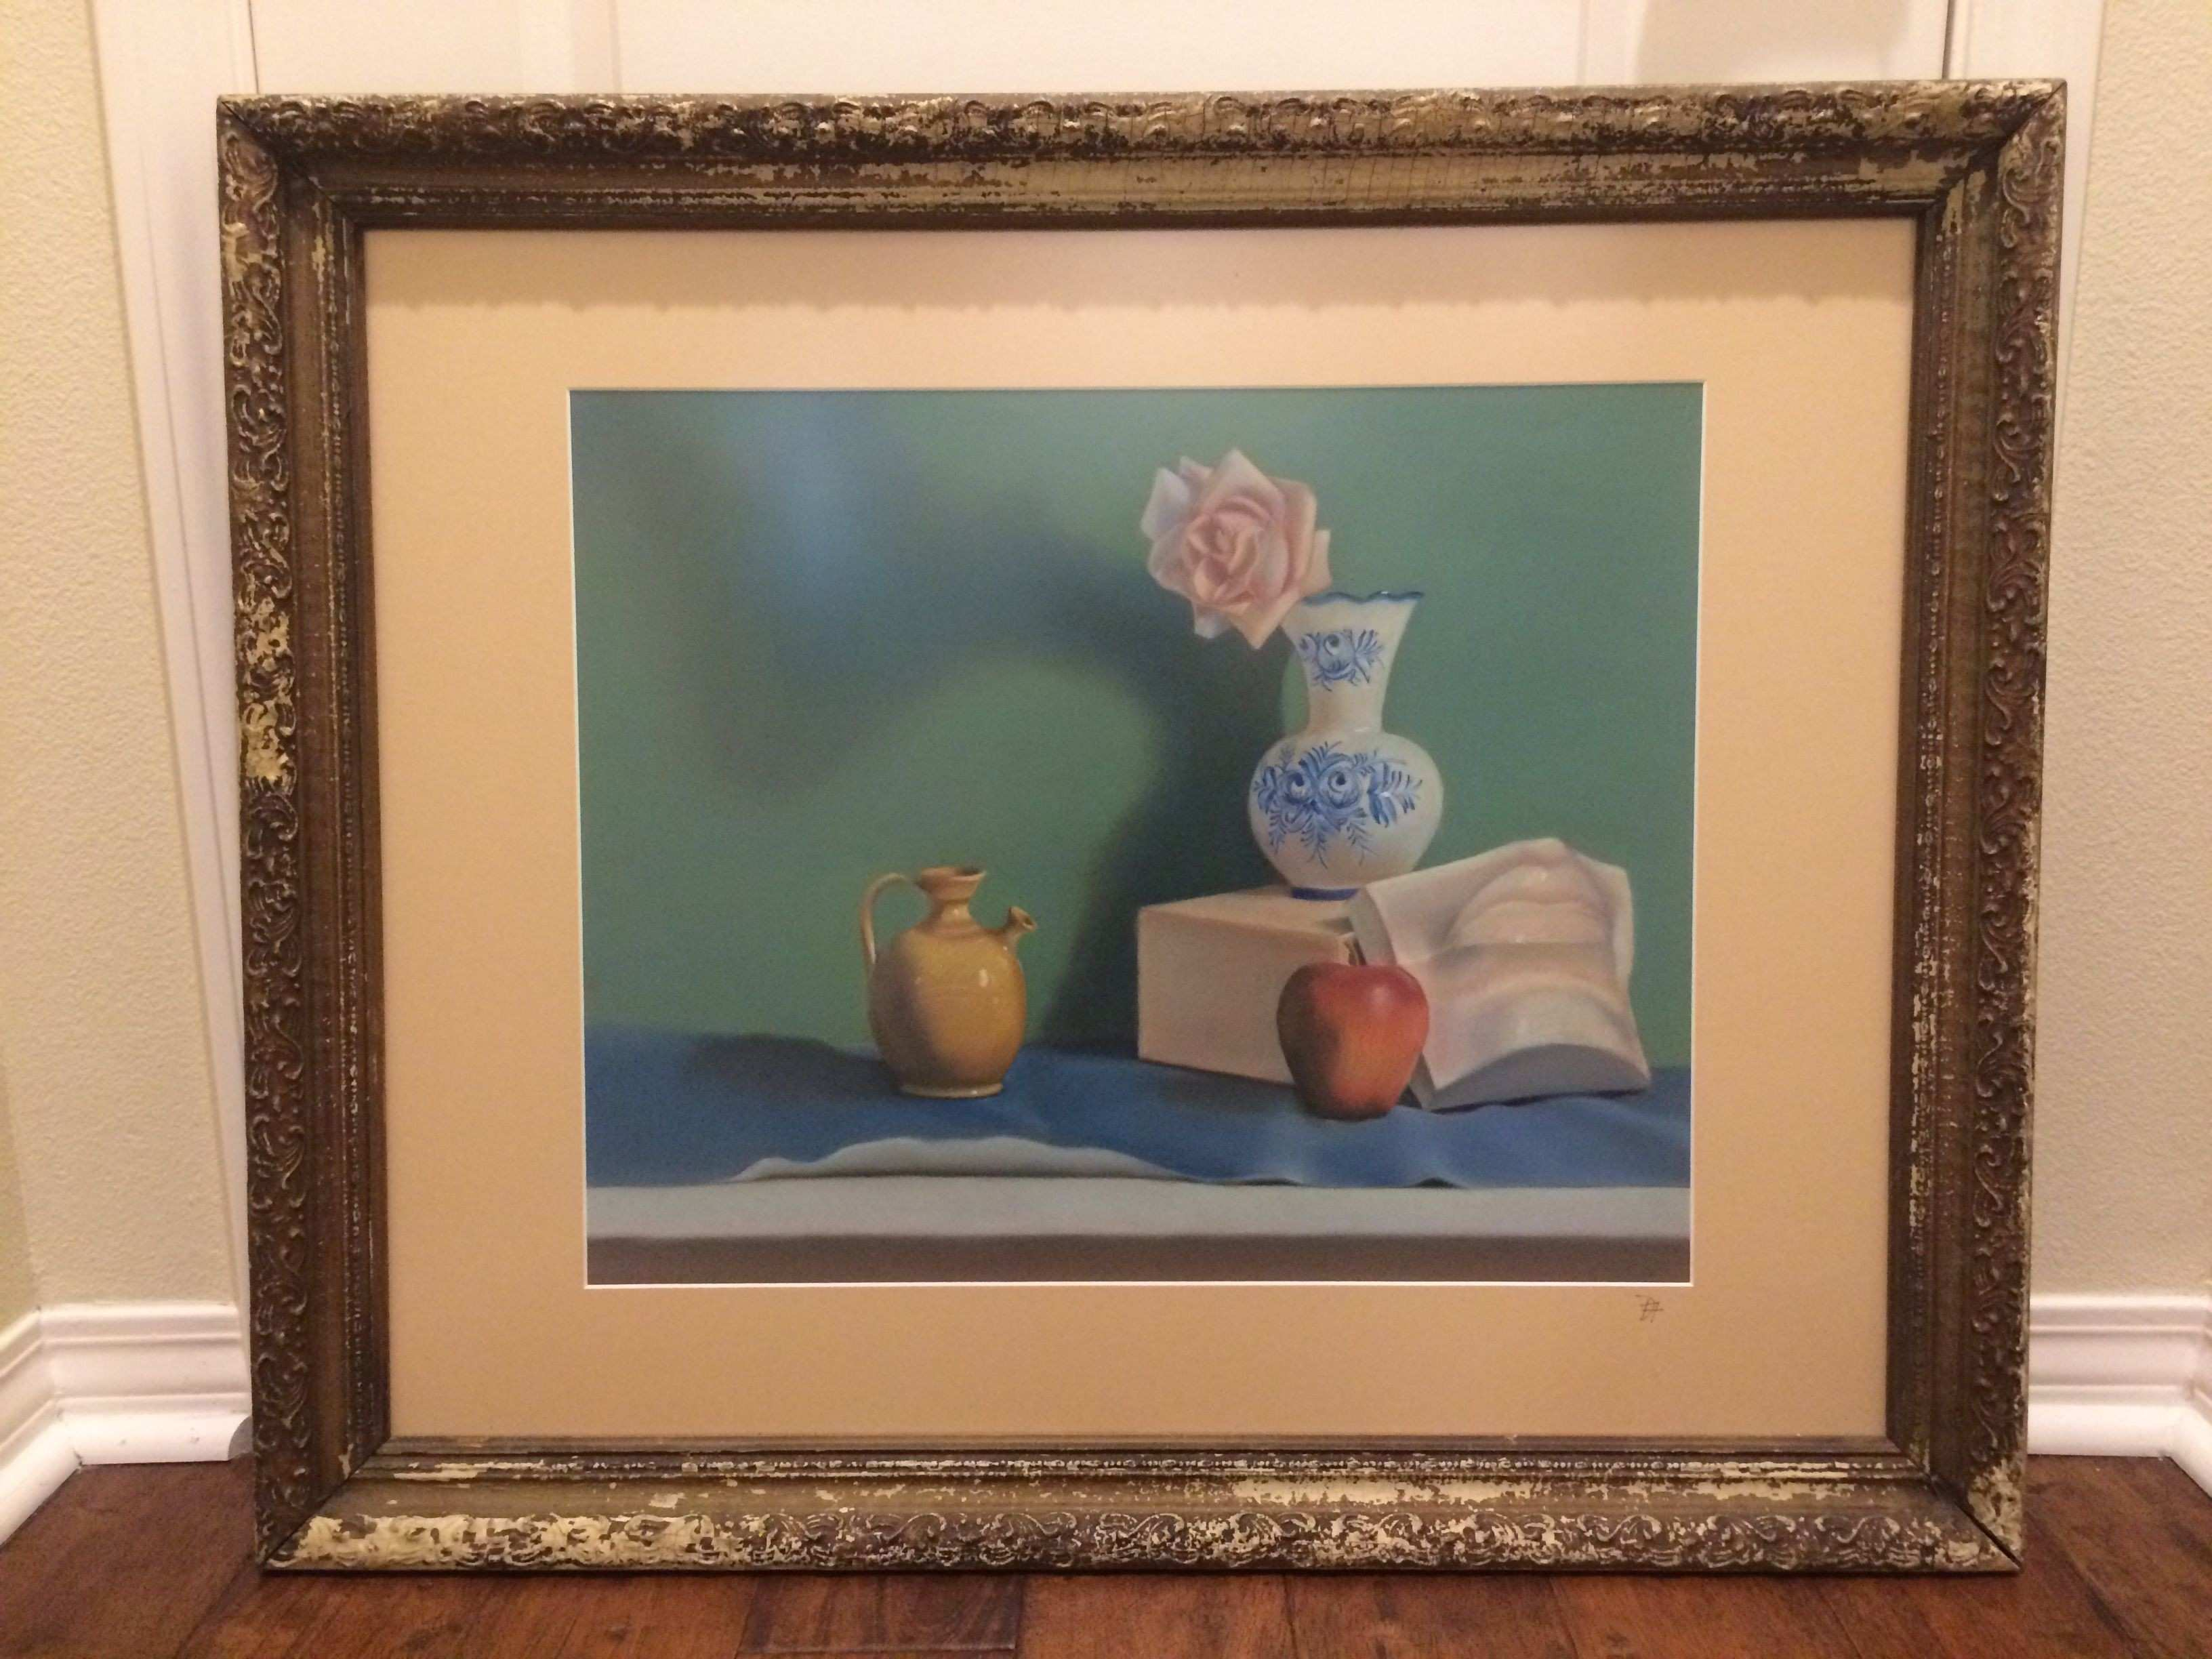 Denise gives her art a classic presentation with custom matting and